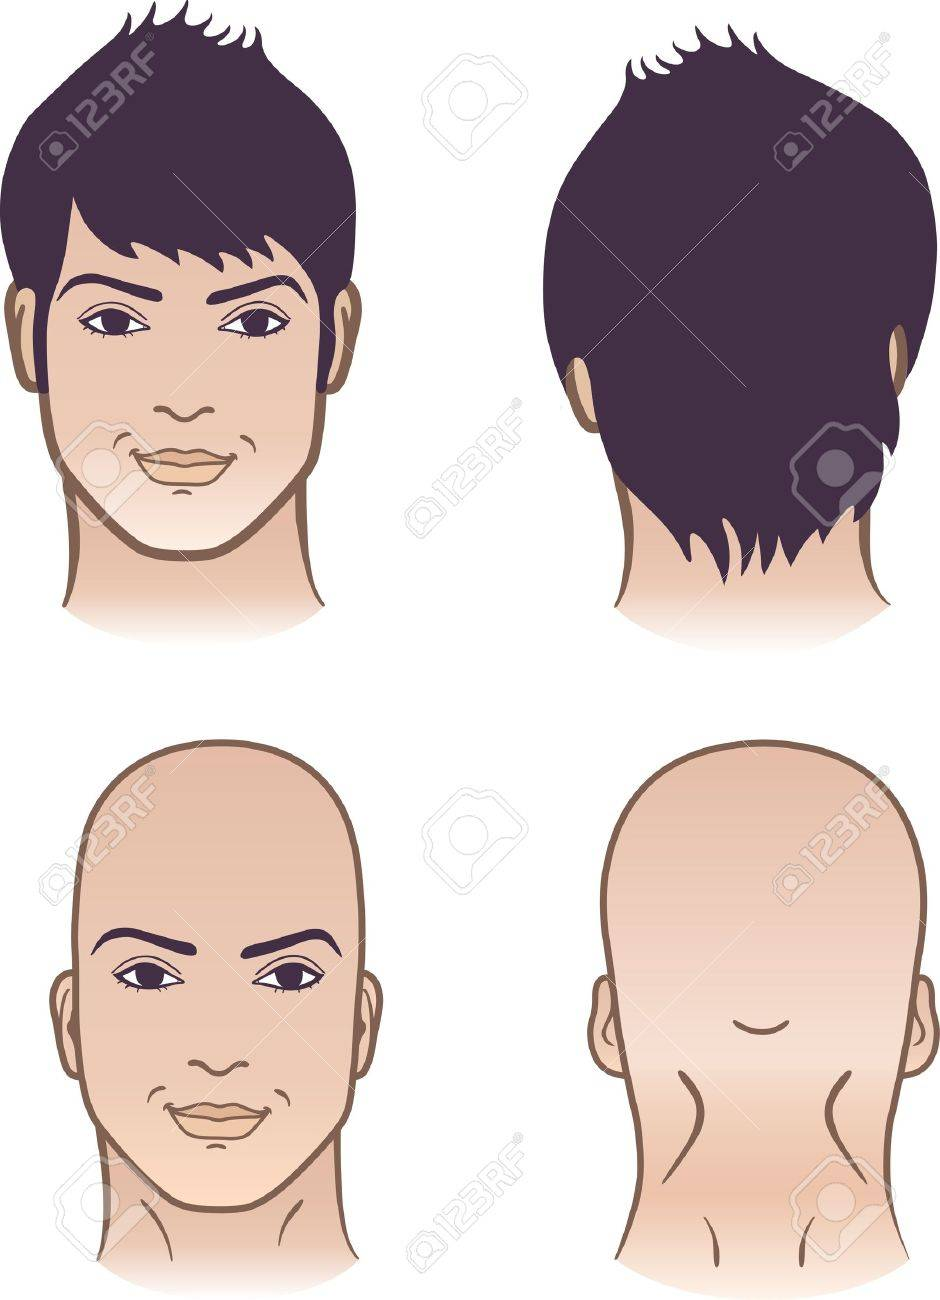 Closeup front, back portrait of a young man smiling on white background Stock Vector - 14306838